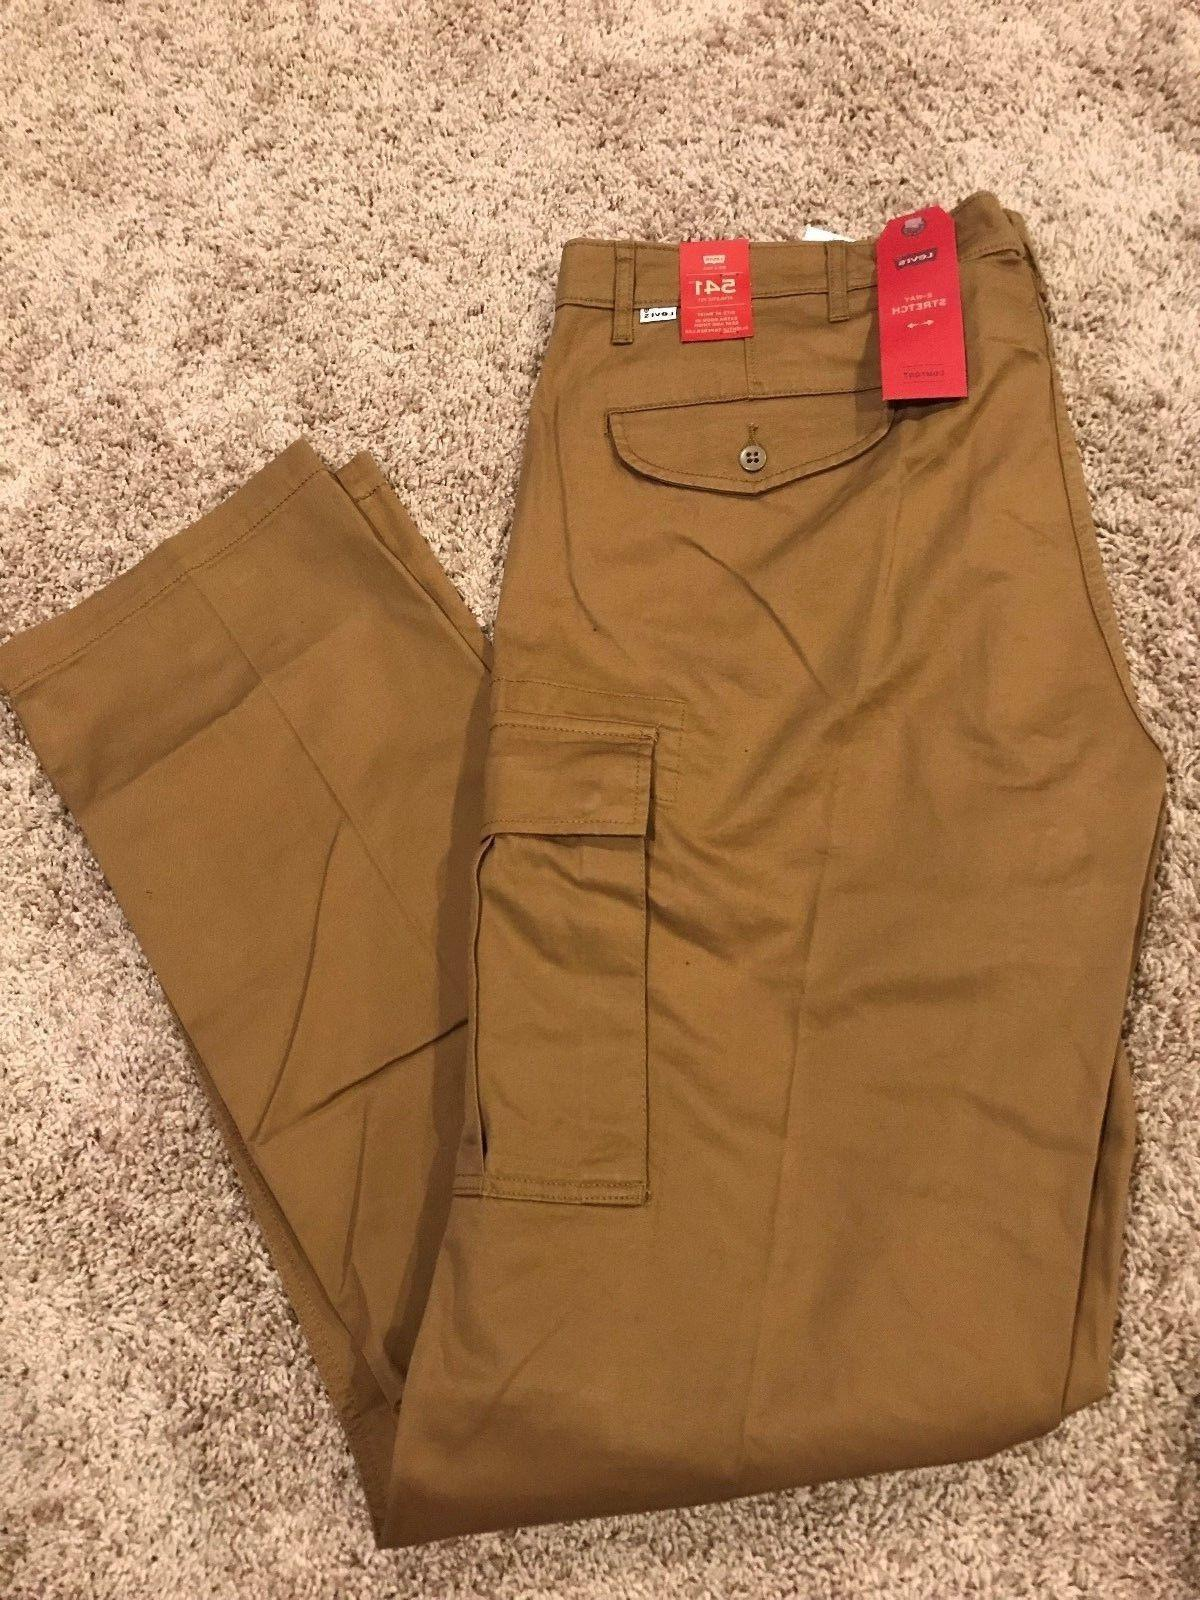 nwt mens levi s 541 athletic fit